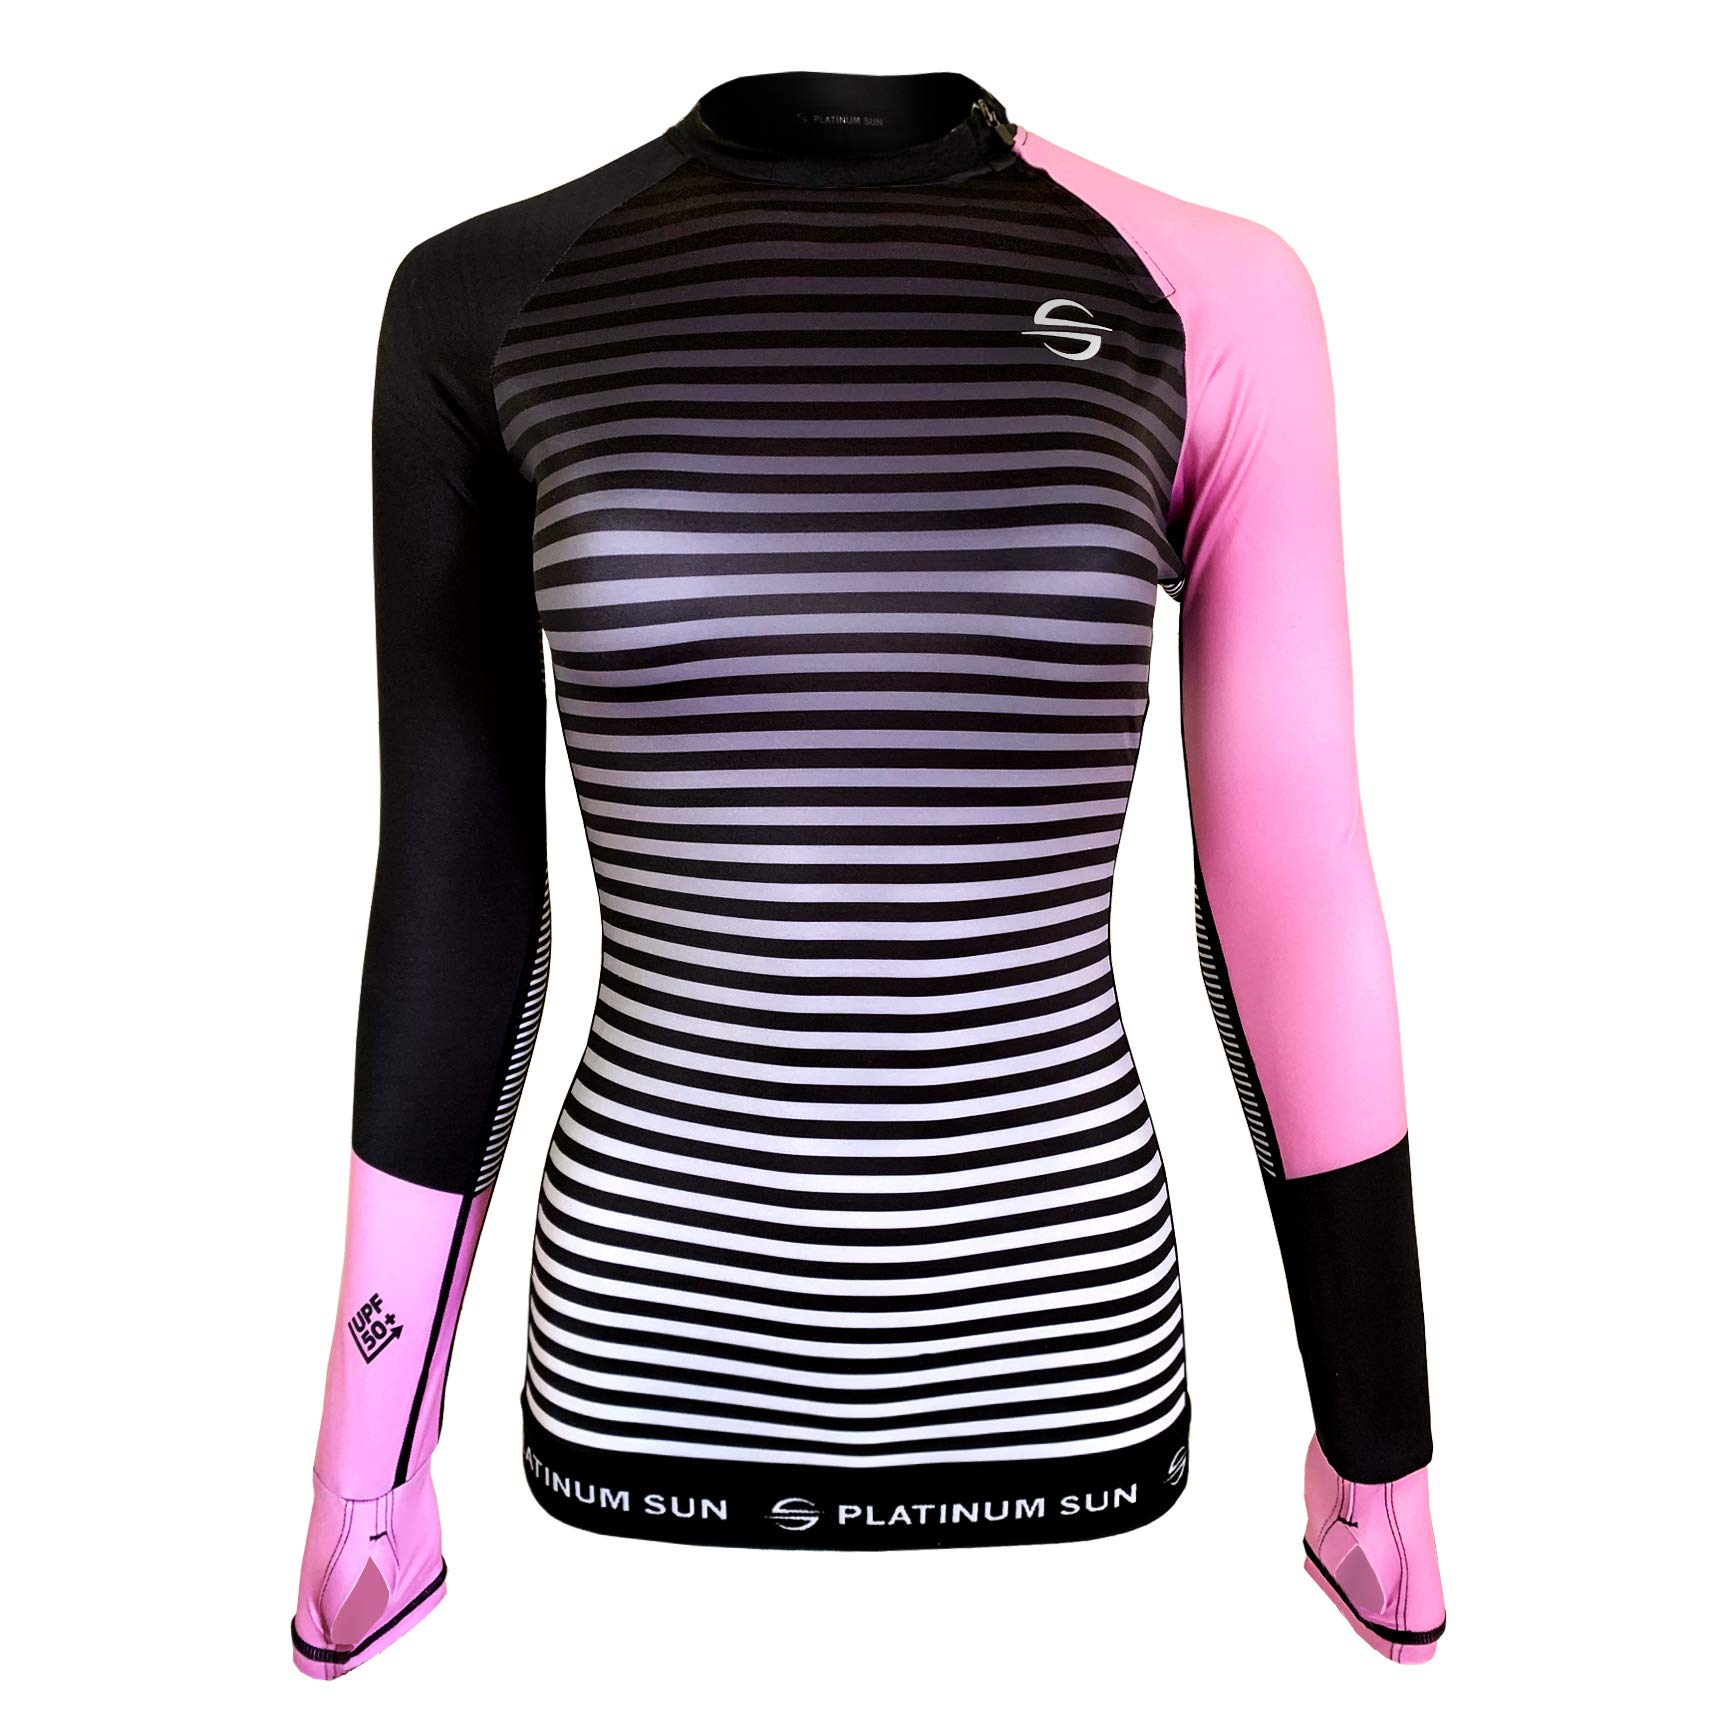 Women's Rash Guard Swim Shirt Long Sleeve Swimsuit Top Bathing Swimming Shirts - Sun Protection Clothing UPF 50+ (Pink-Stripes, XXL) by Platinum Sun